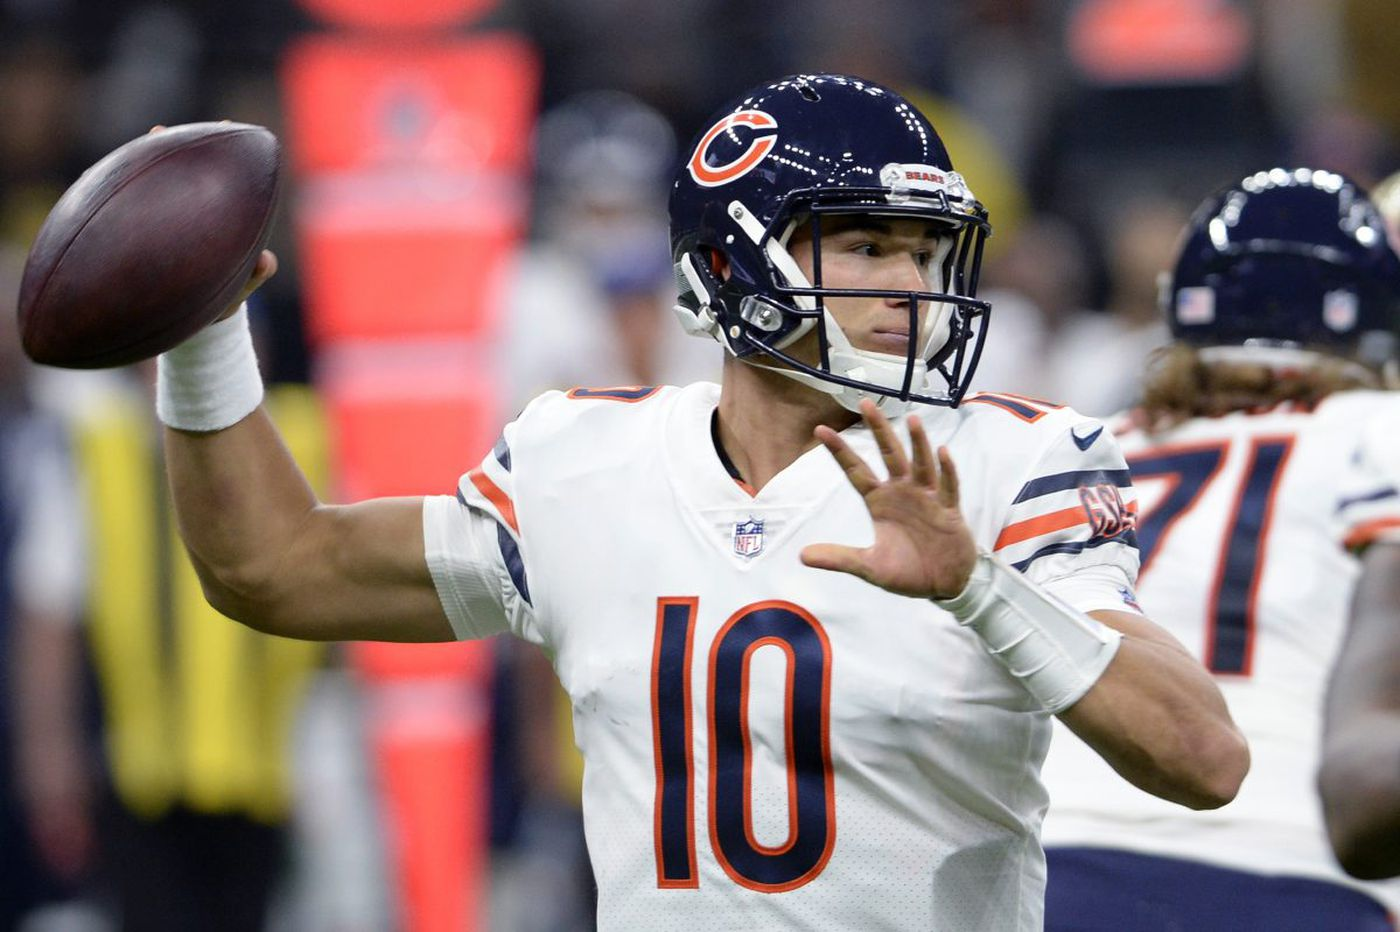 Is Mitch Trubisky the next Carson Wentz? Bears certainly hope so